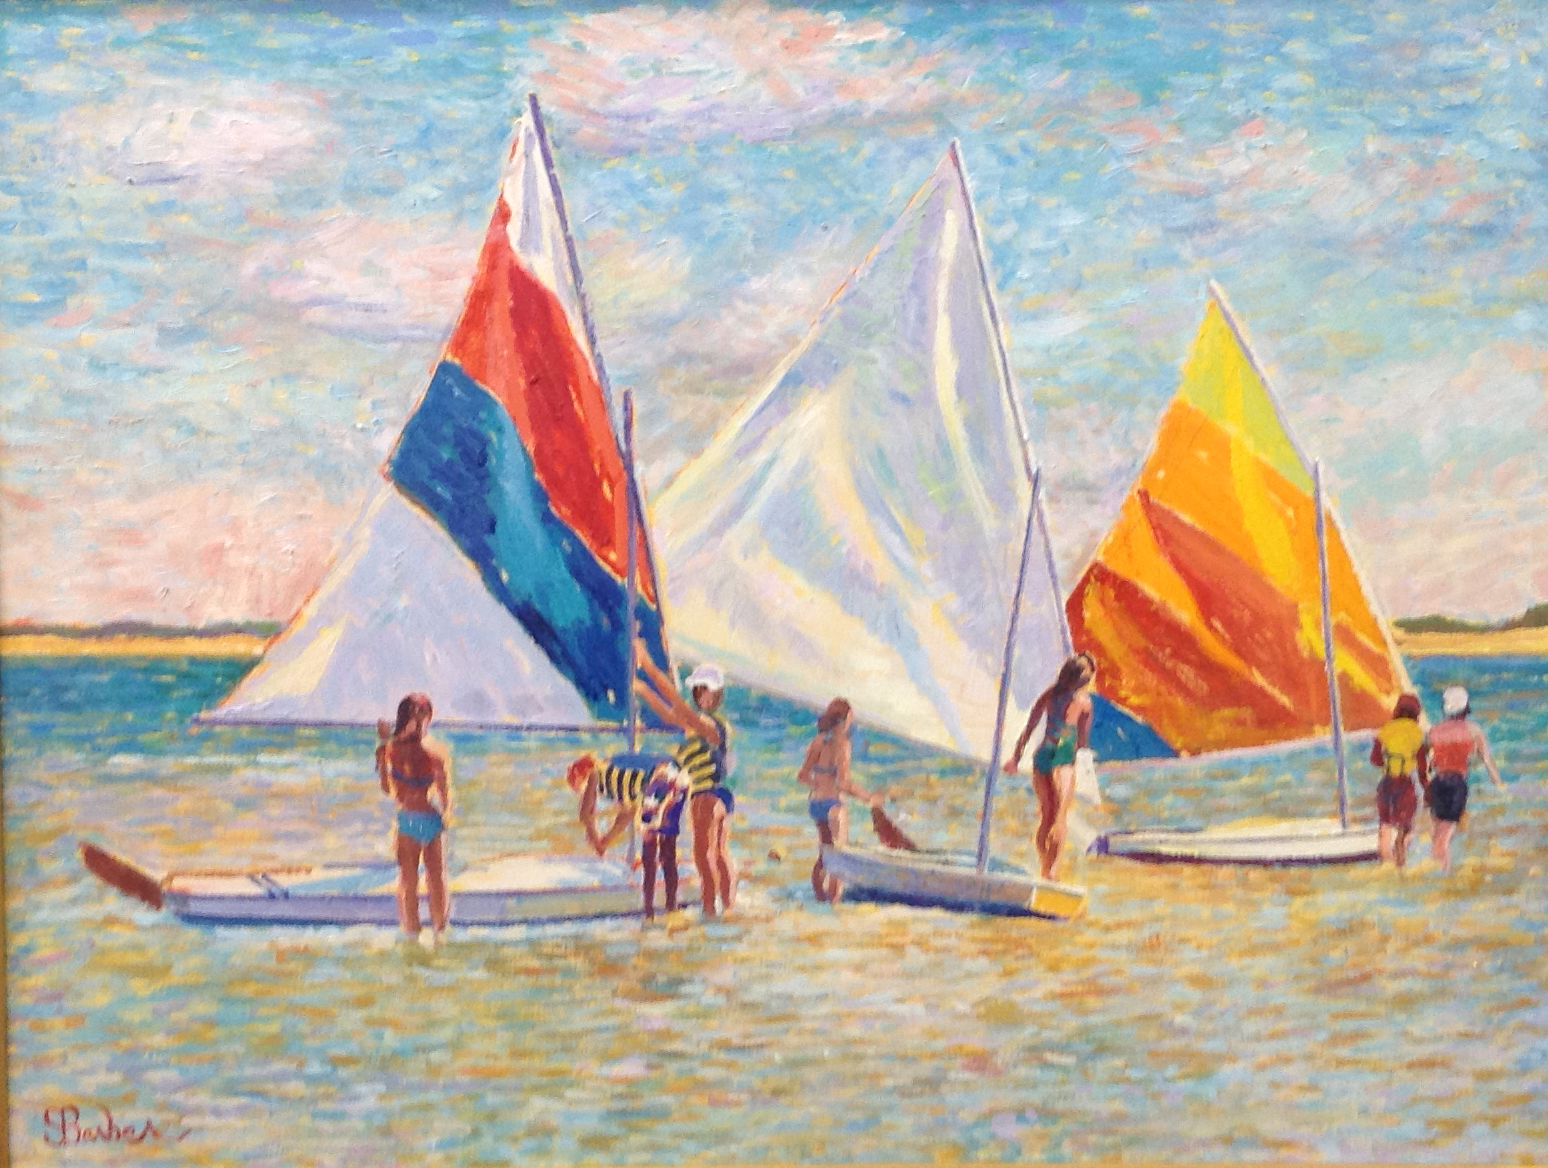 West End Sailing Club  | 30 x 40 |  Oil on canvas